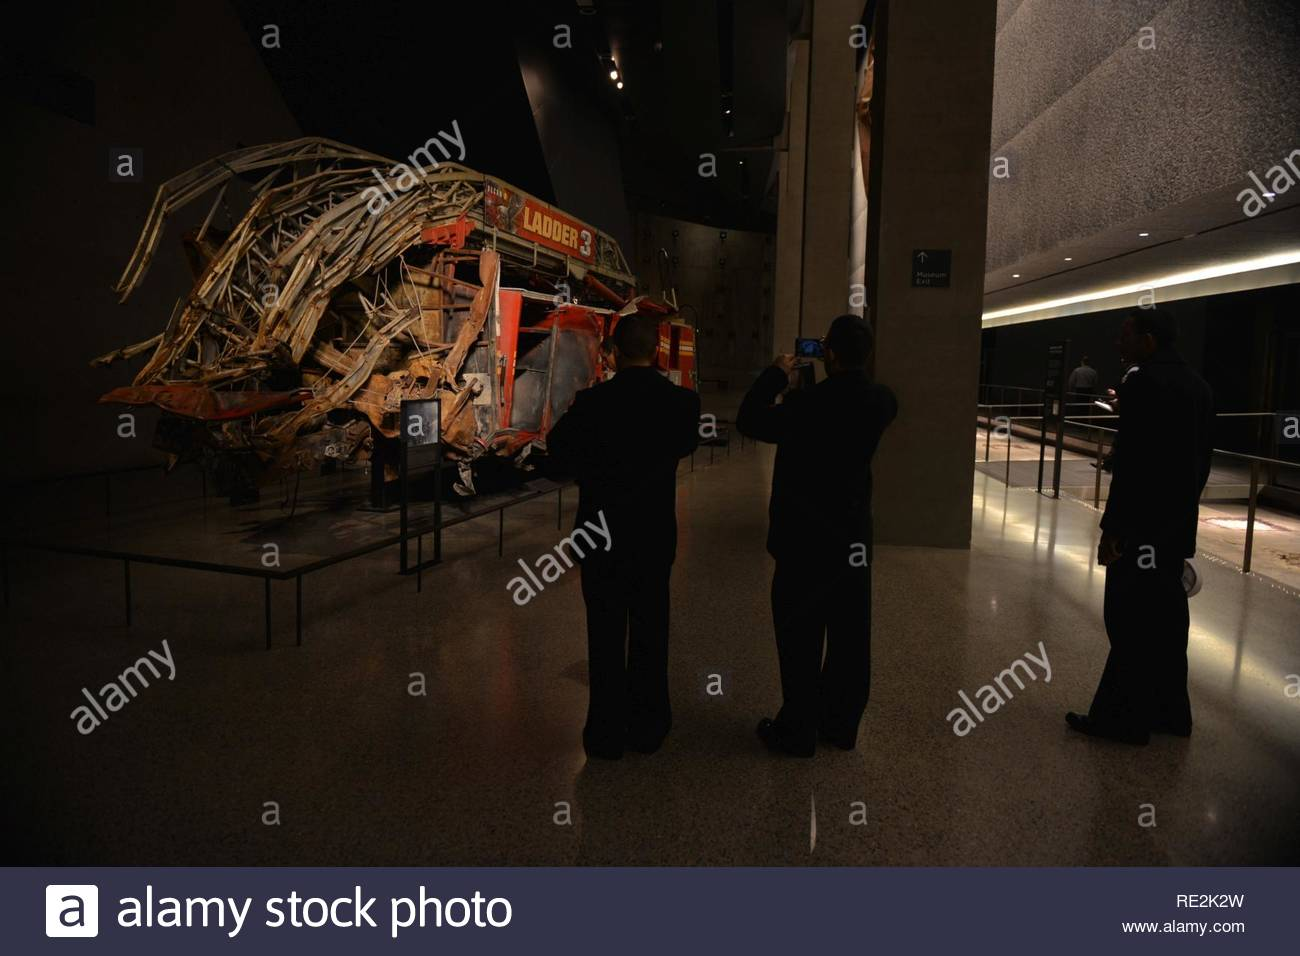 NEW YORK (Nov. 12, 2016) - Sailors attached to amphibious assault ship USS Iwo Jima (LHD 7) view the remains of the Ladder Company 3 fire truck at the National 9/11 Memorial & Museum at the World Trade Center. Iwo Jima is participating in Veterans Week New York City 2016 to honor the service of all our nation's veterans. The ship recently returned from the humanitarian assistance mission to Haiti in the aftermath of Hurricane Matthew - Stock Image